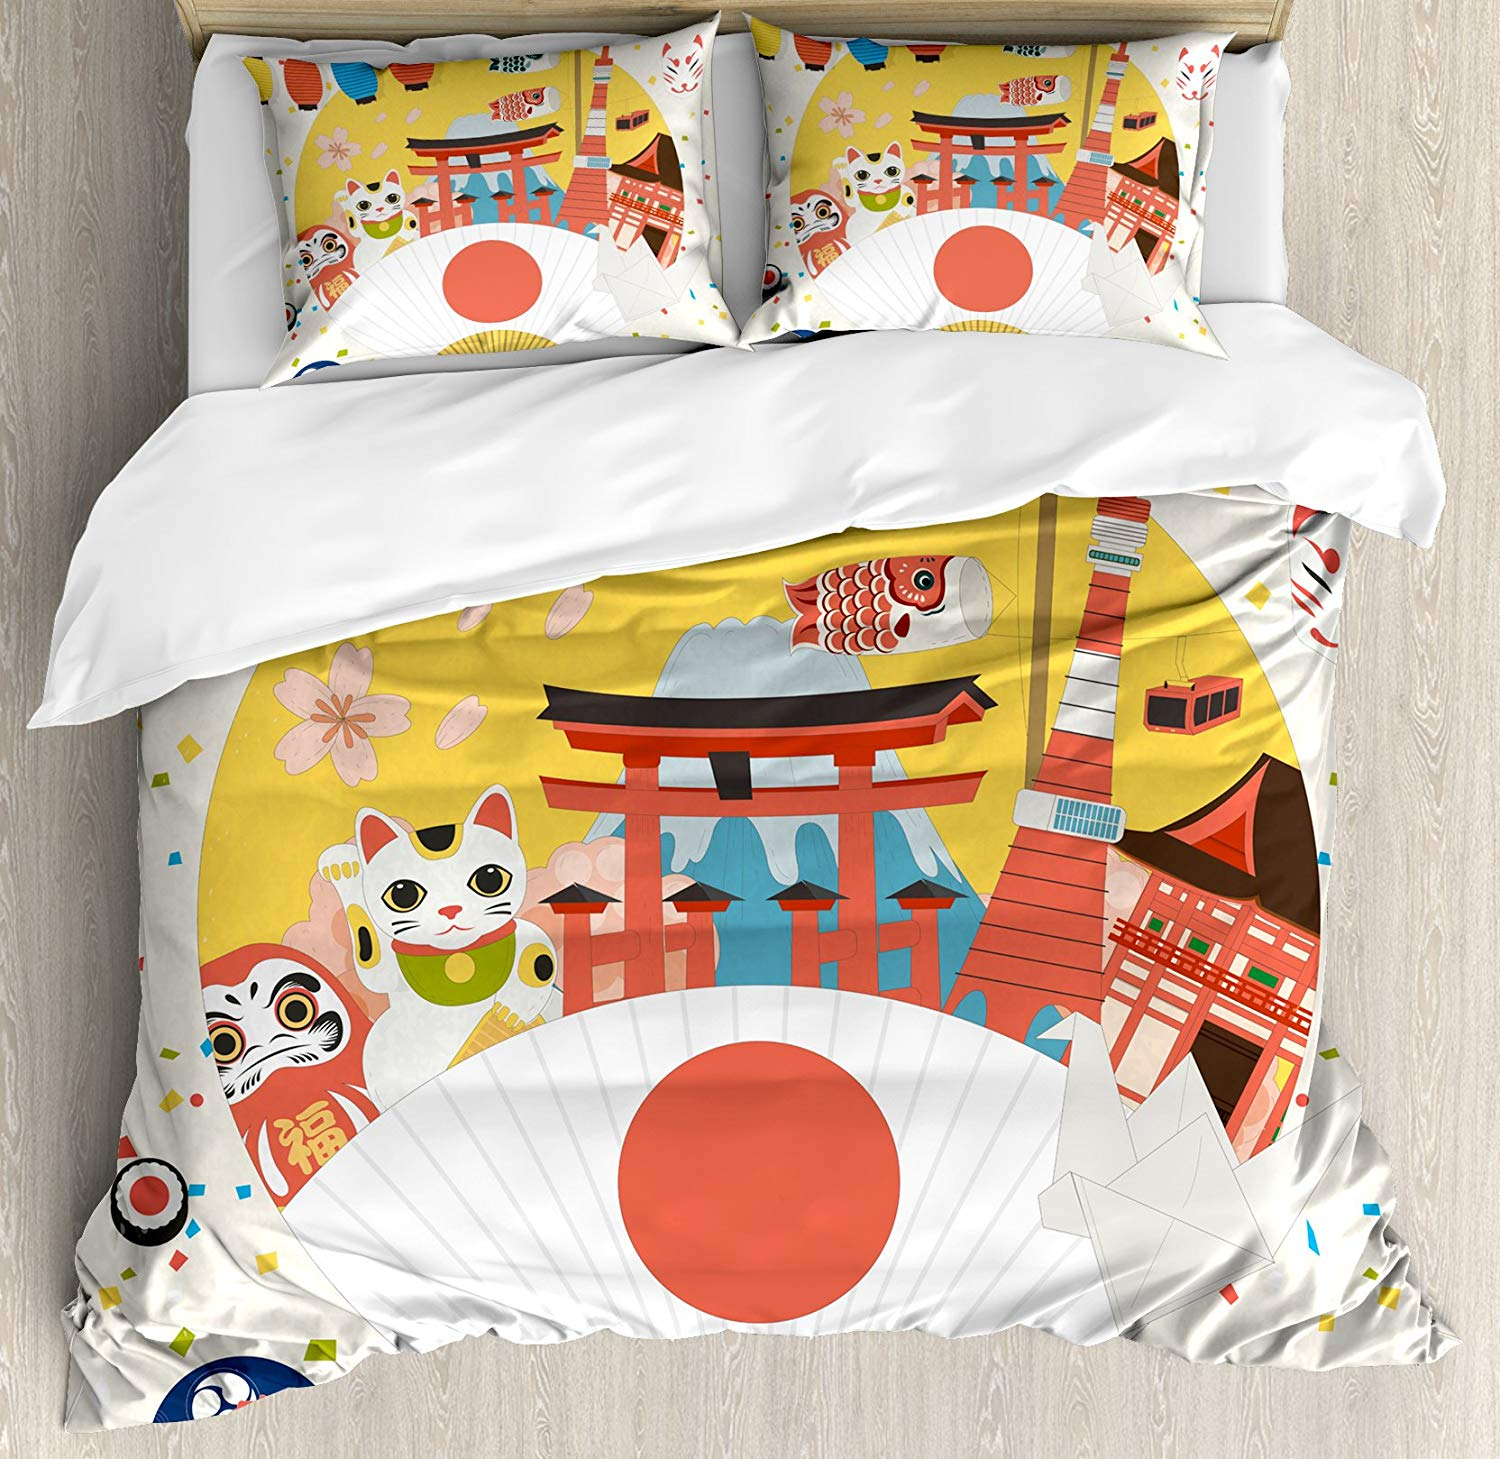 Queen King SUPER King 300TC Bedding House Origami Cotton Quilt Doona Cover Set